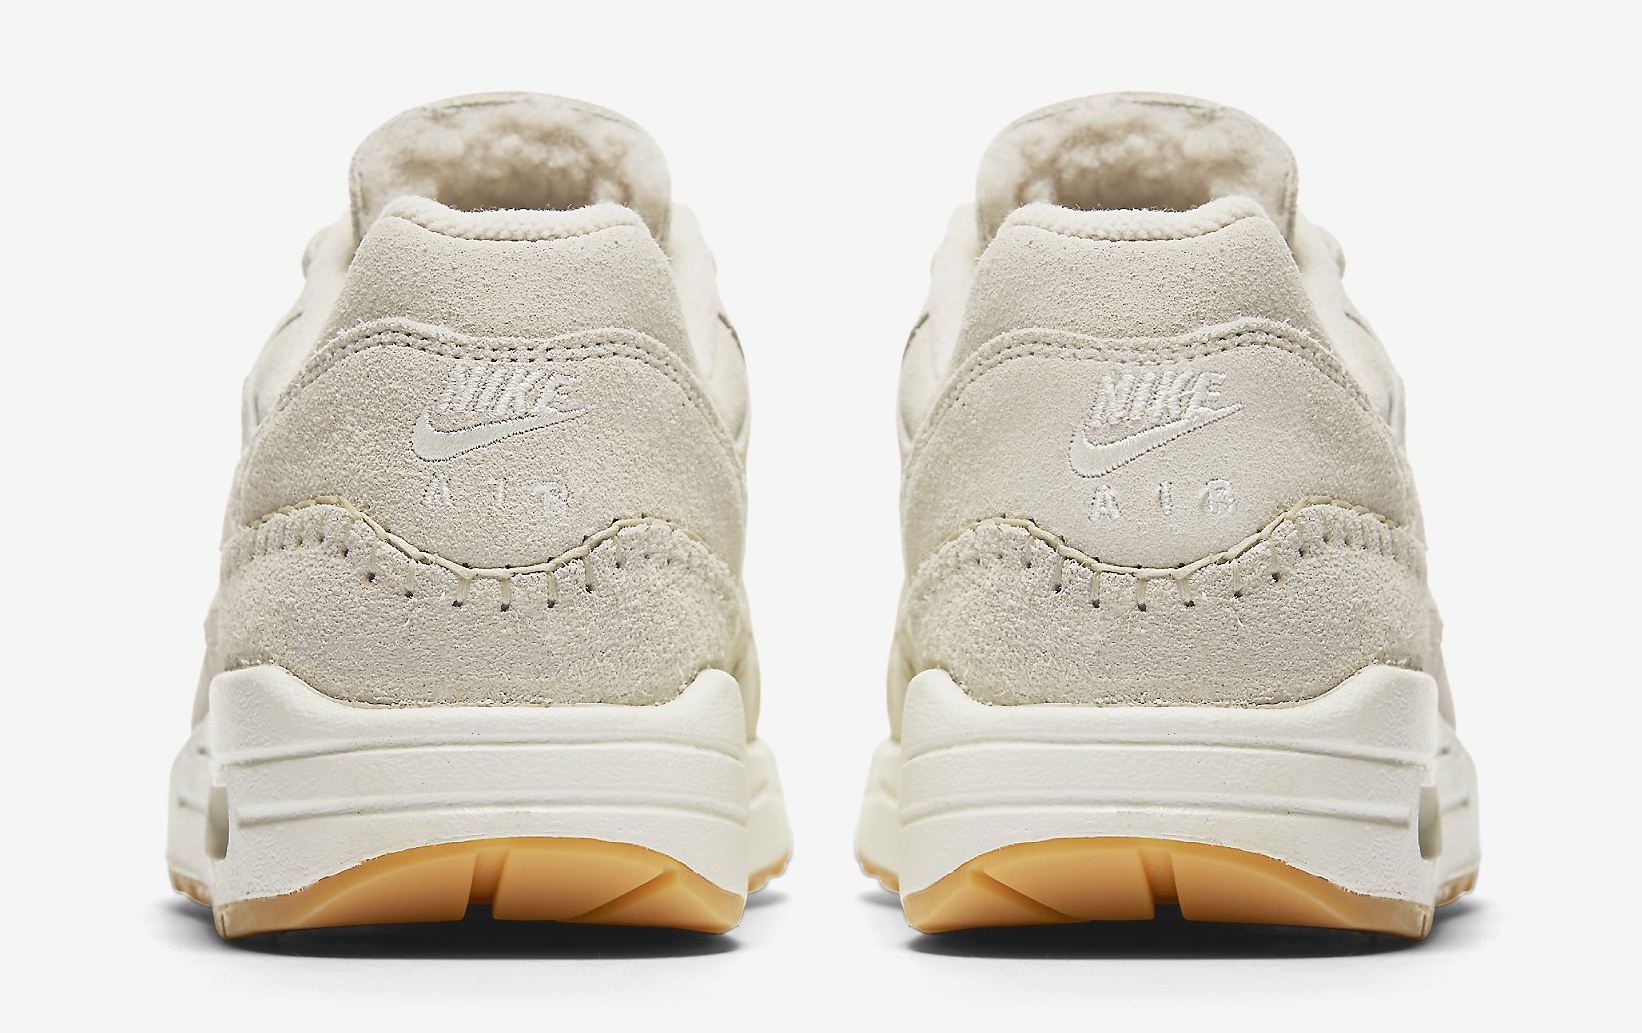 Nike Air Max 1 Sherpa Cream 454746-204 Heel